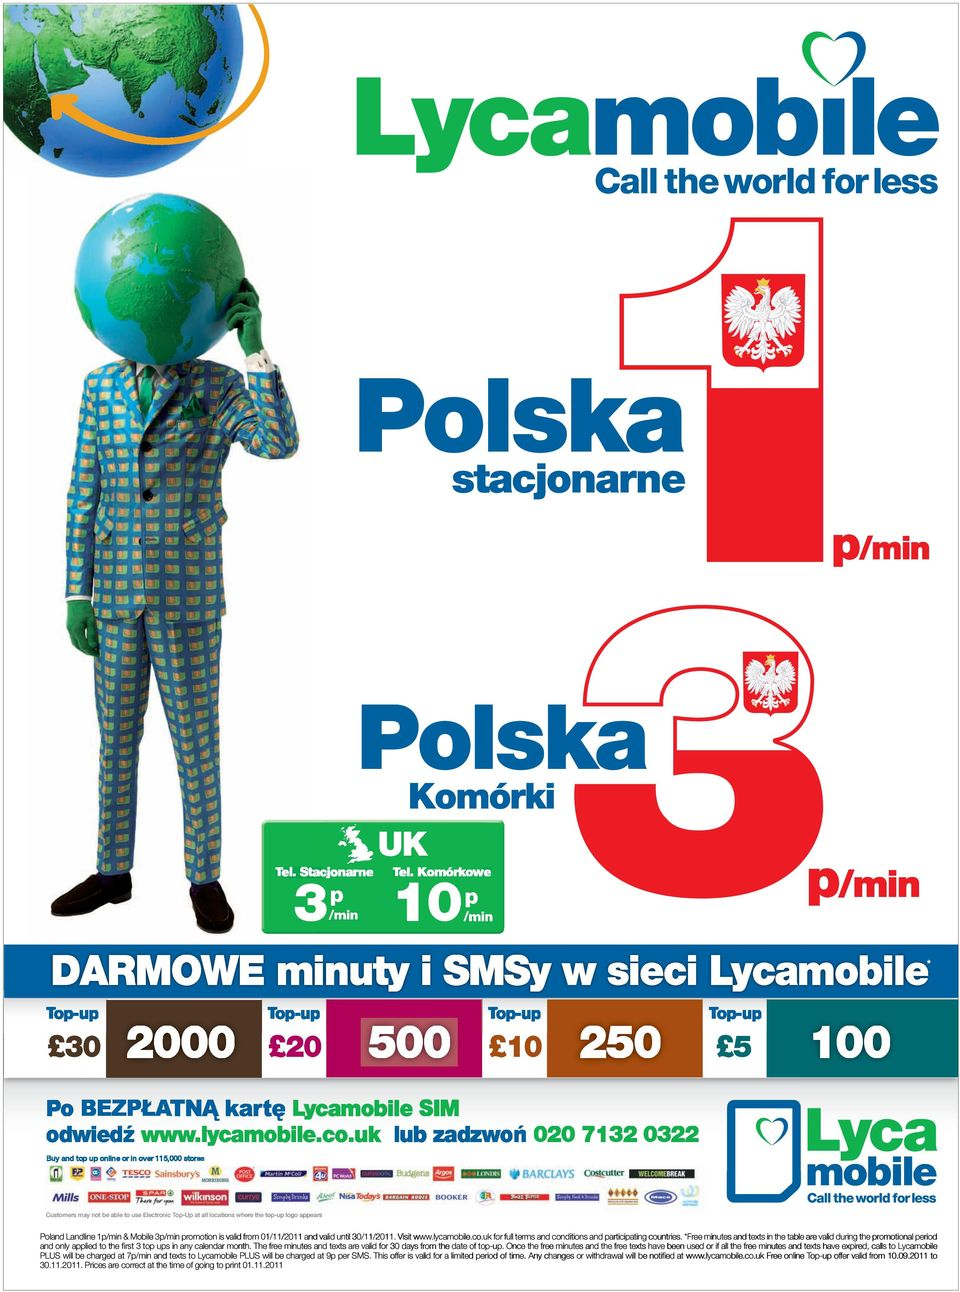 uk lub zadzwo 020 7132 0322 Buy and top up online or in over 115,000 stores Customers may not be able to use Electronic Top-Up at all locations where e the top-up logo appears Poland Landline 1p/min